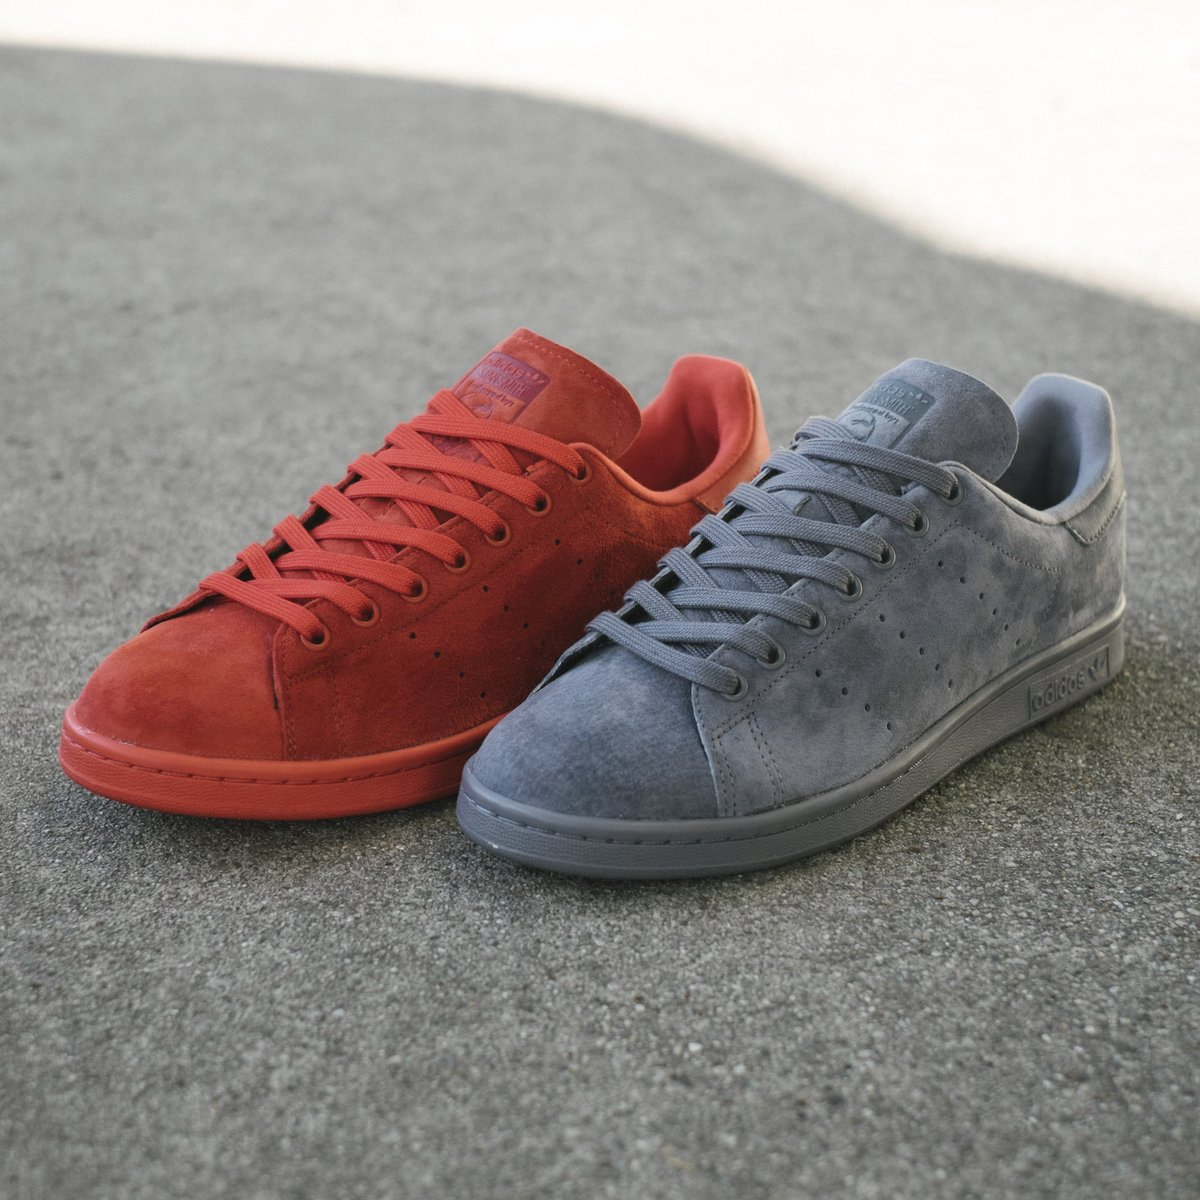 Adidas Stan Smith Monochrome